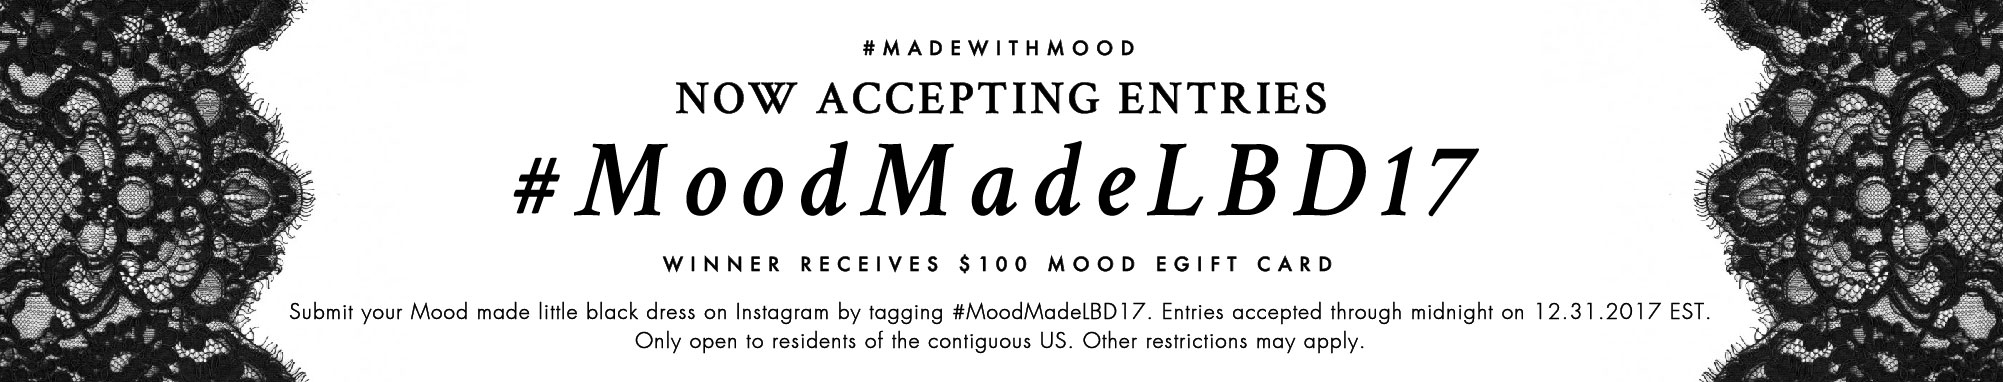 Full Terms and Conditions: #MoodMadeLBD17